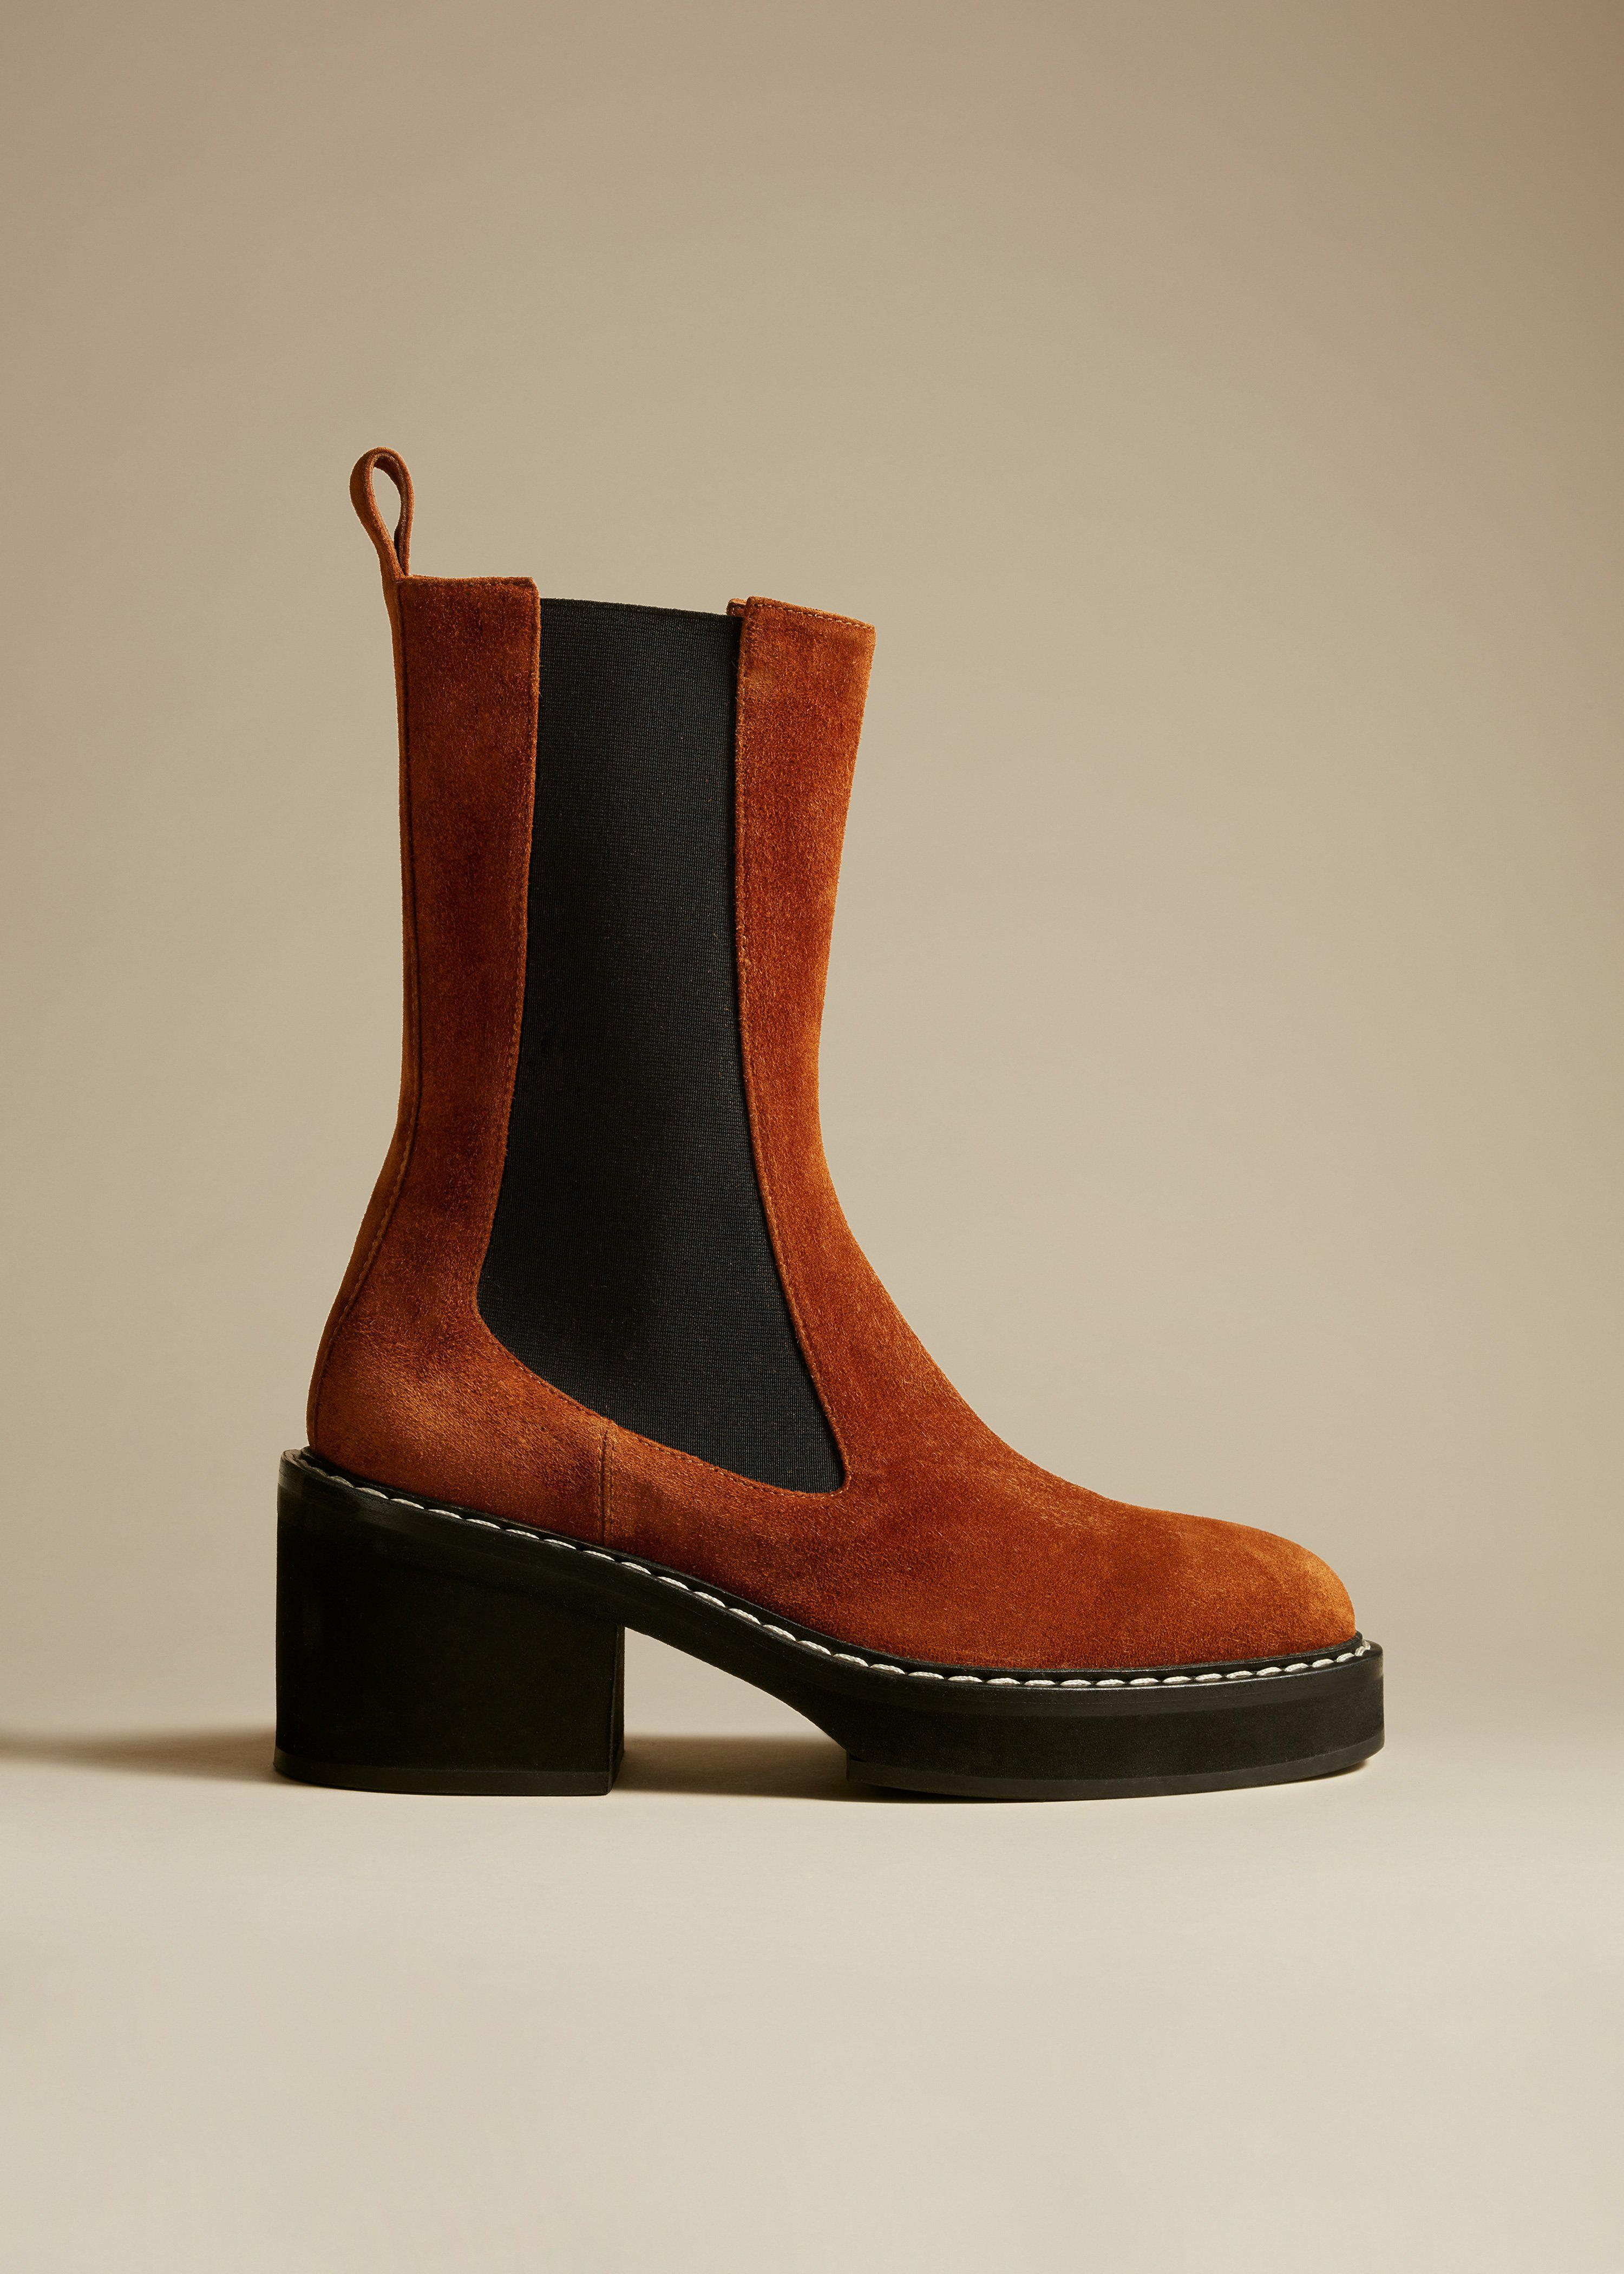 The Calgary Boot in Caramel Suede